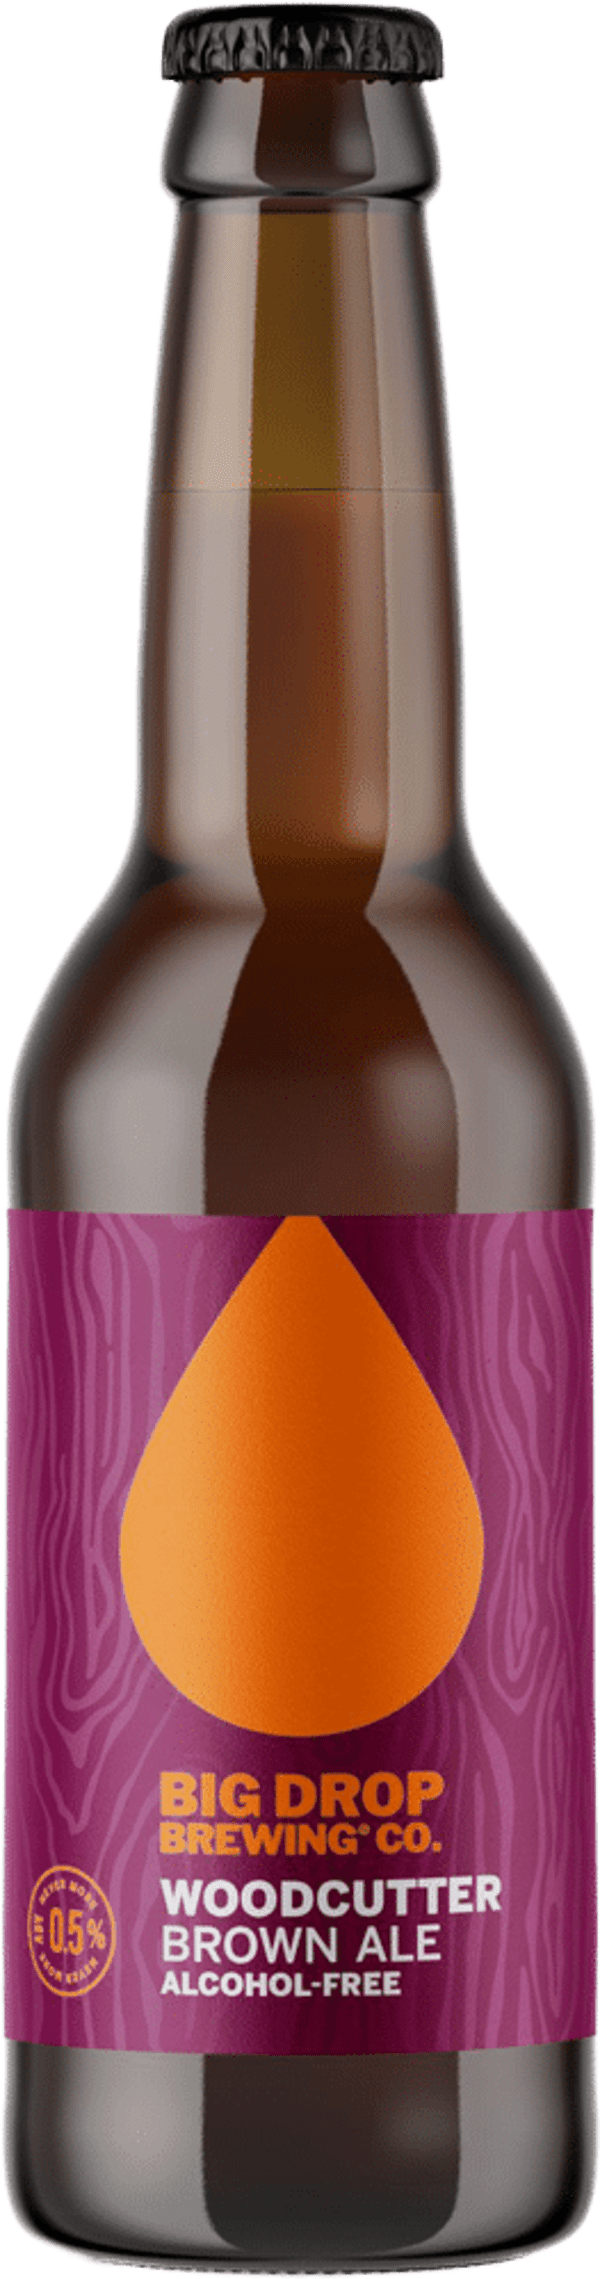 A pack image of Big Drop's Woodcutter Brown Ale